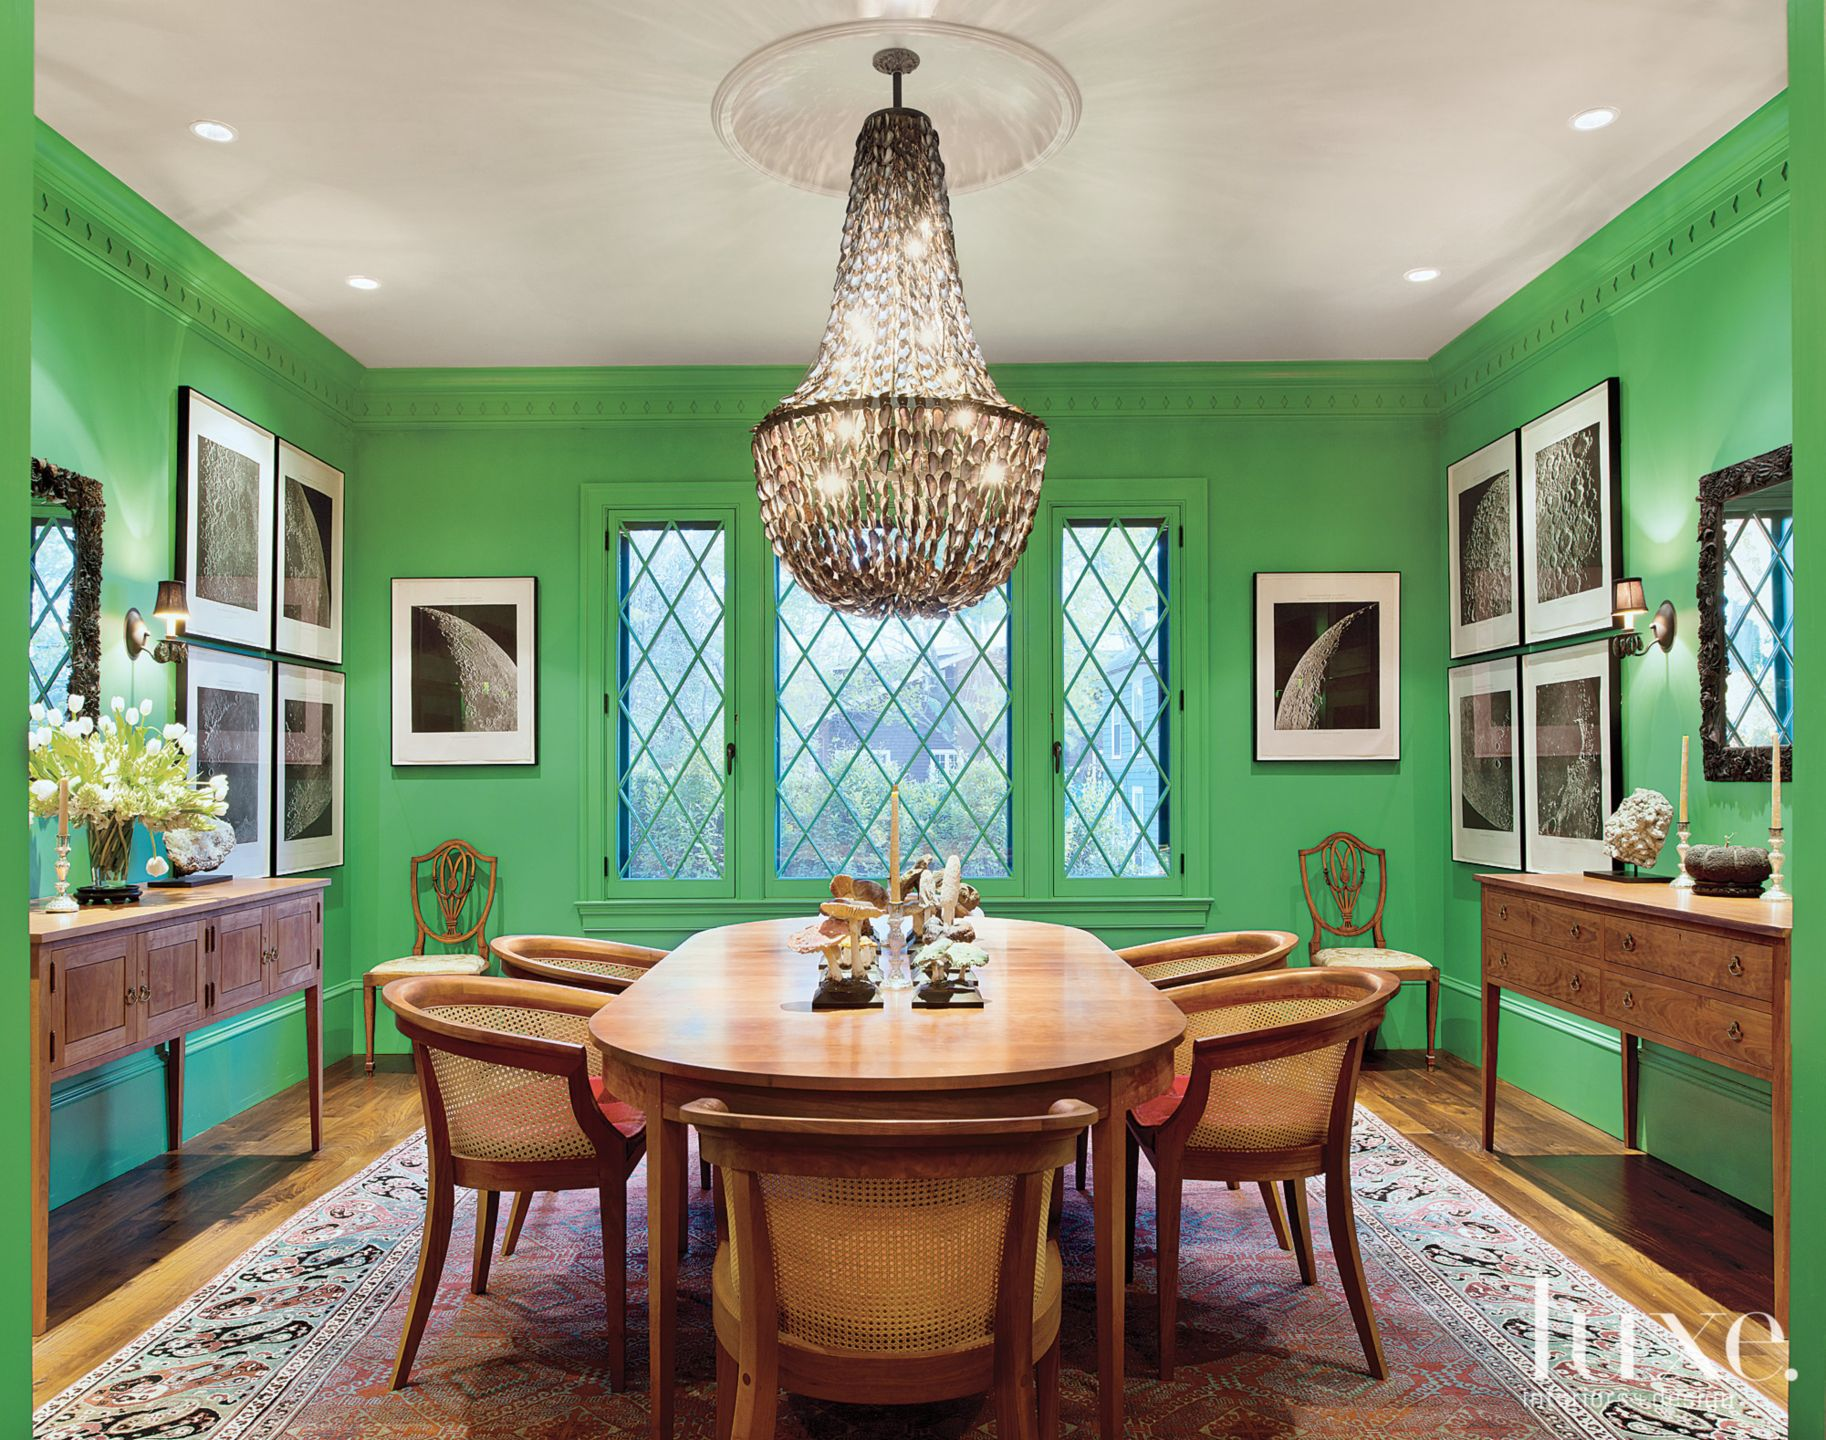 Eclectic Green Dining Room with Statement Chandelier